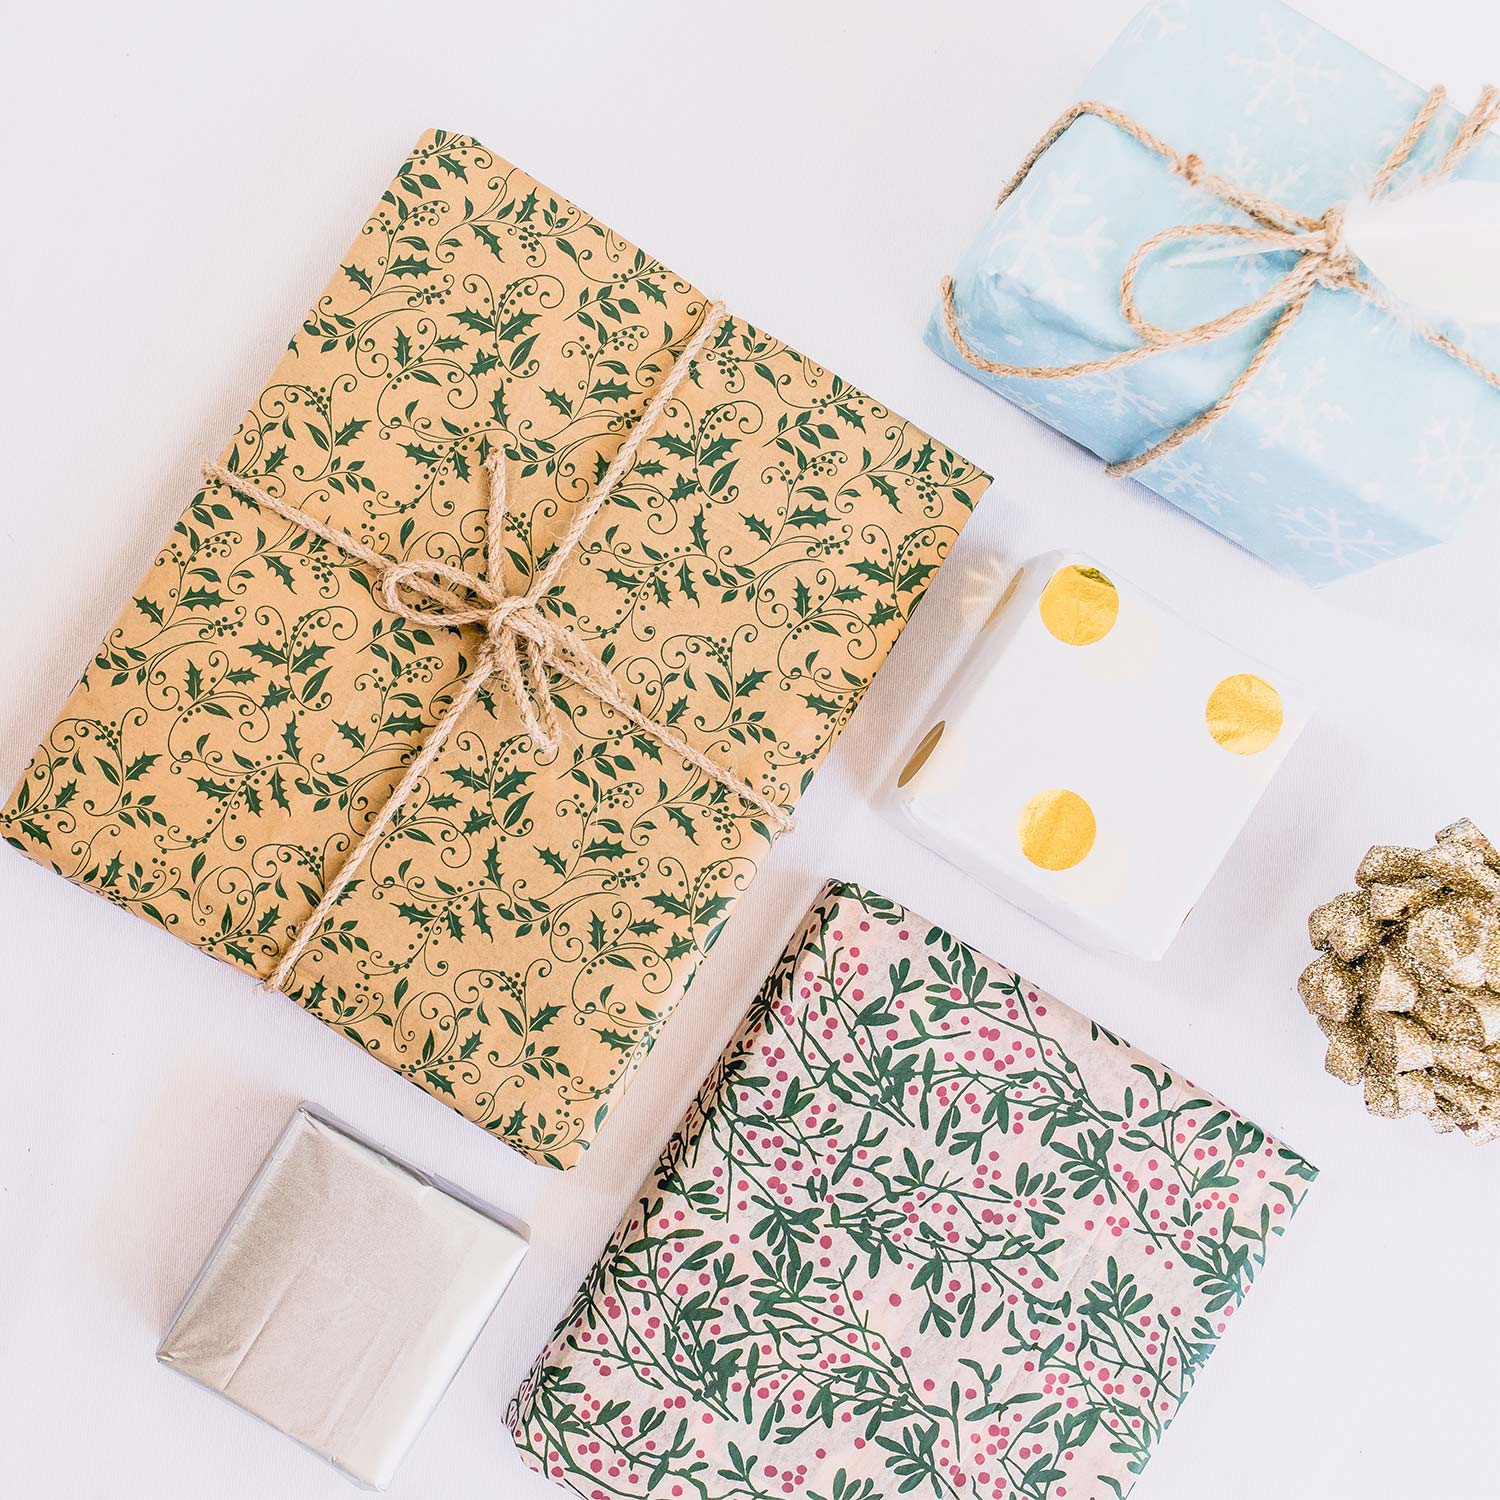 Image of four wrapped gifts in wrapping paper with different prints, two featuring jute string